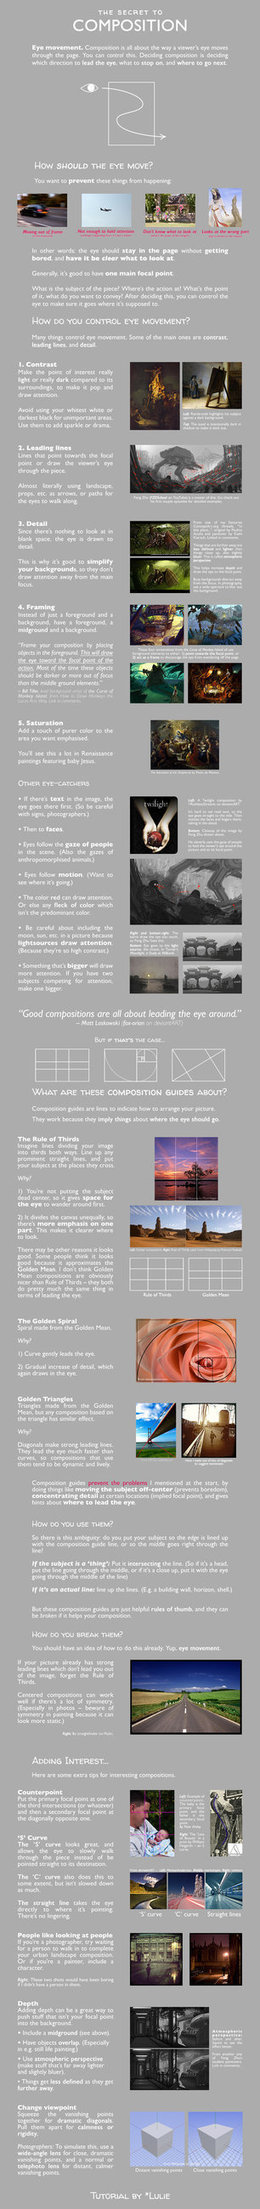 The Secret to Composition | digital art and media | Scoop.it